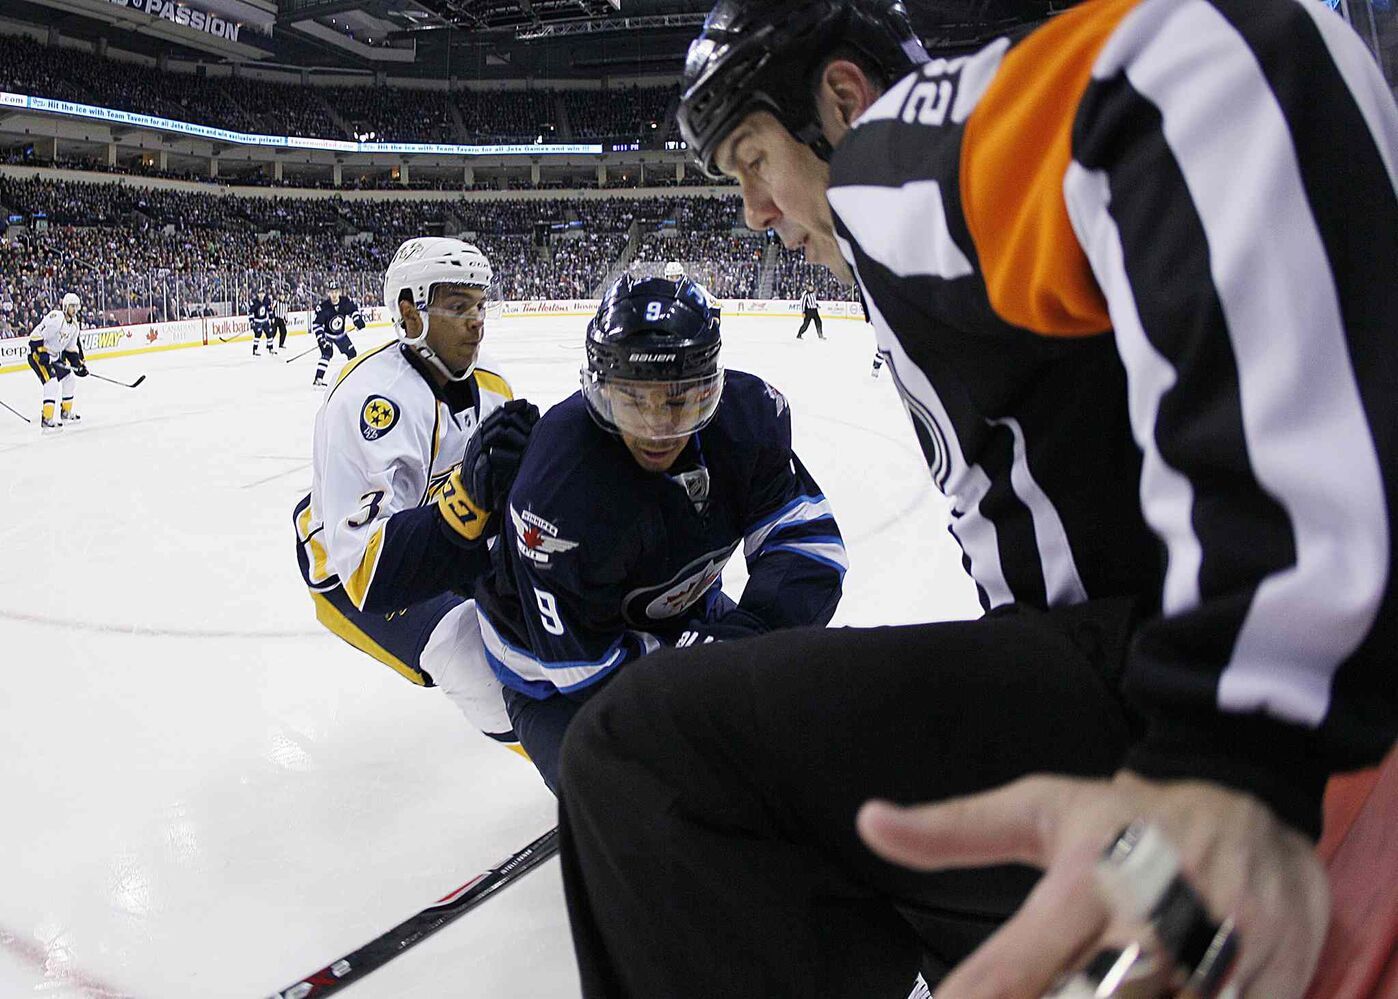 A referee attempts to get out of the way of Nashville Predators' Seth Jones' (3) check on Evander Kane (9) during the second period.